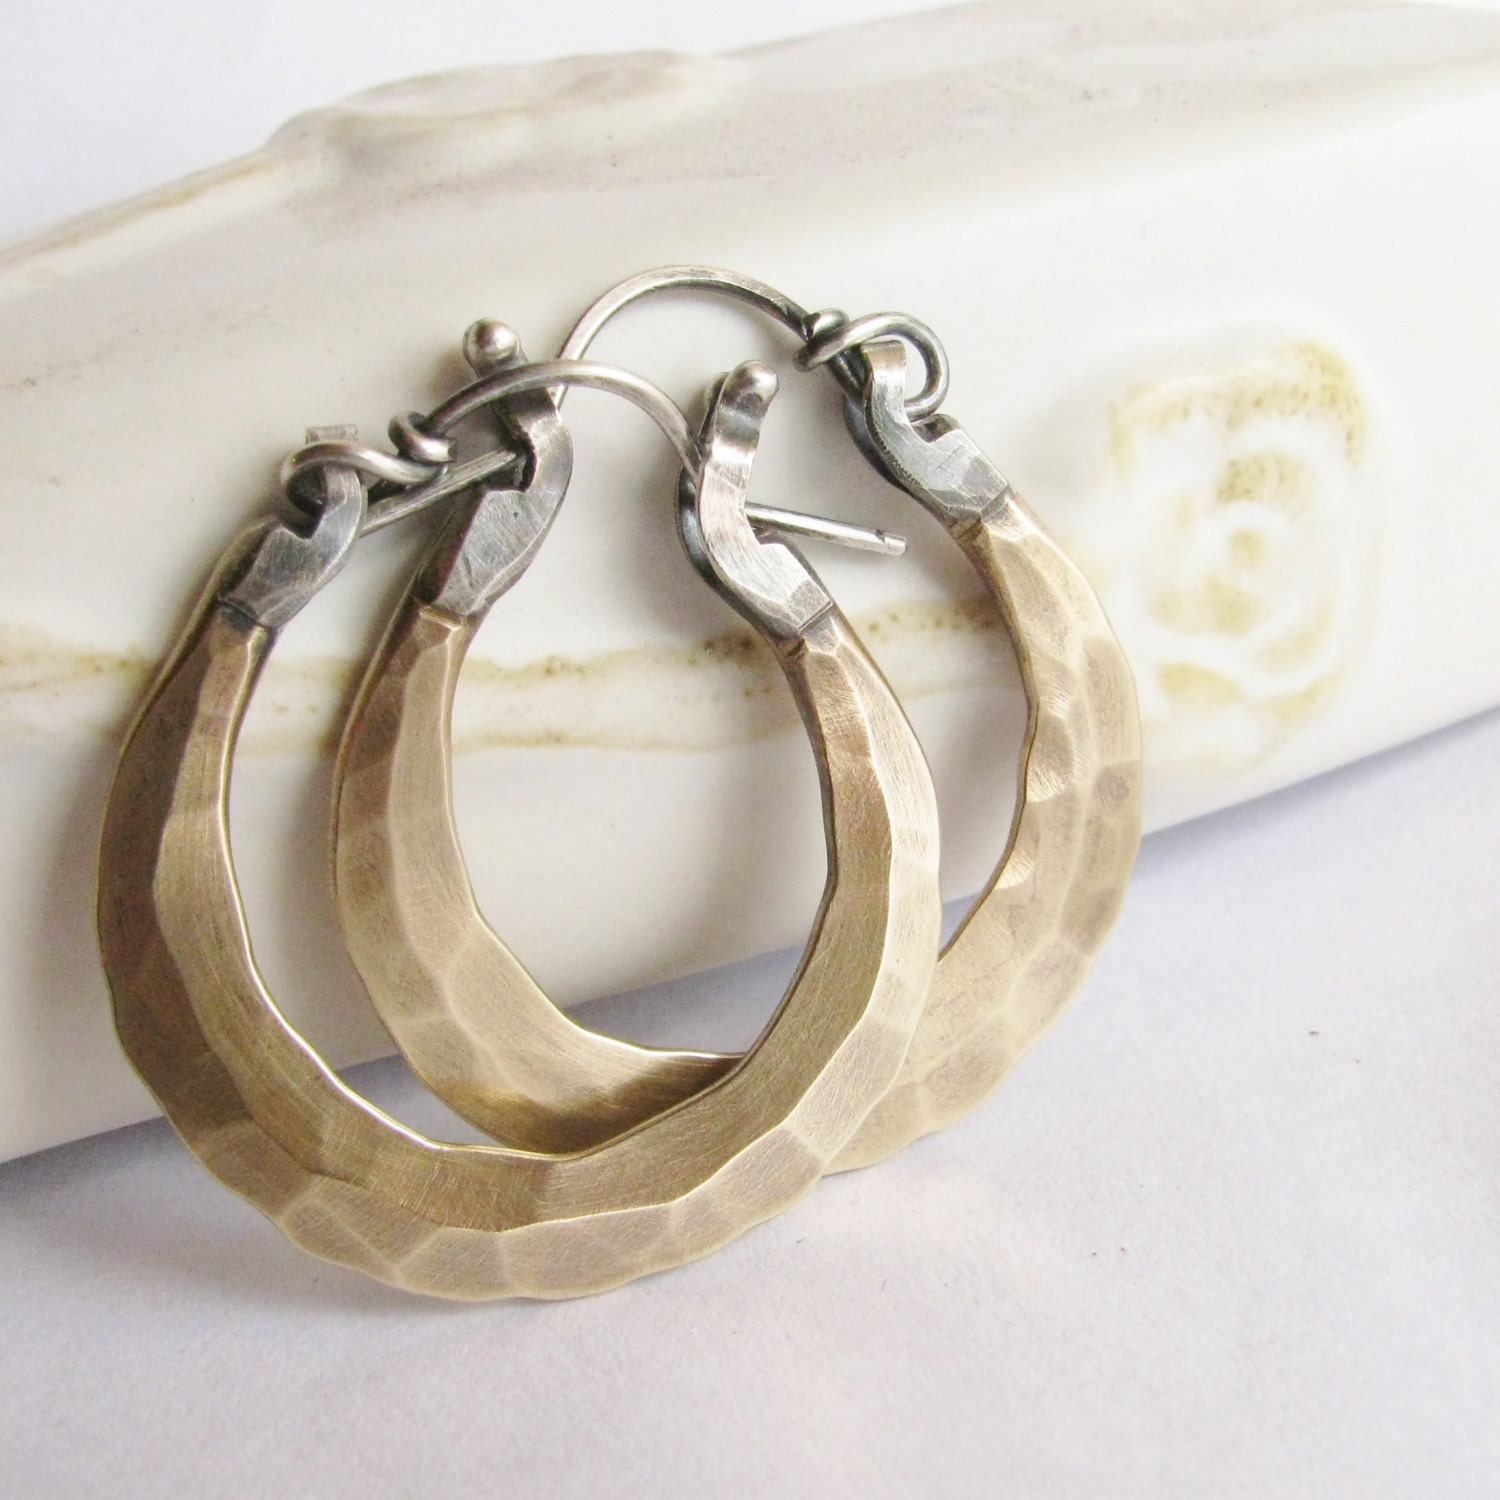 small bronze earrings hoop earrings forged sterling silver and. Black Bedroom Furniture Sets. Home Design Ideas